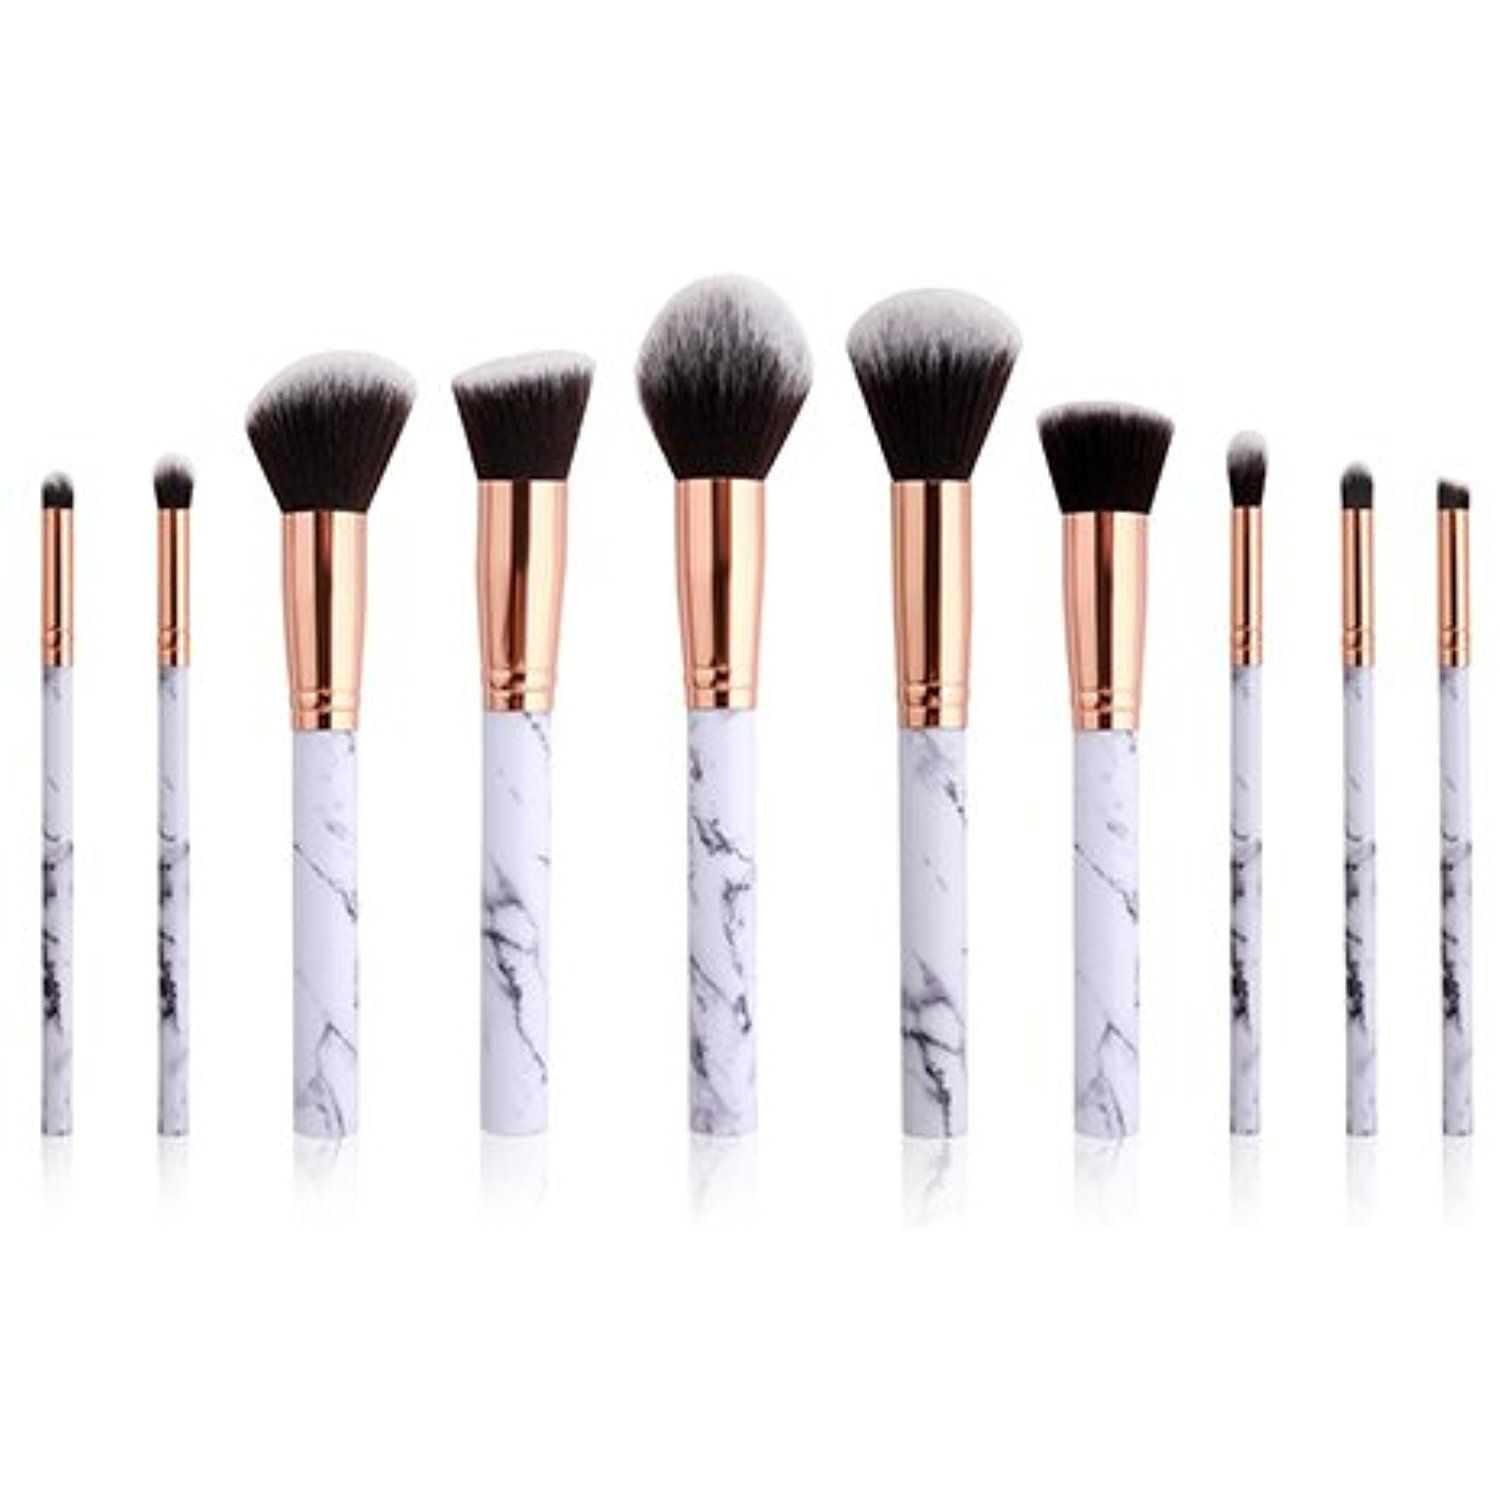 Laixi Beauty 10 Pieces Marble Makeup Brushes Special Marble Pattern Premium Make Up Brush Set Synthetic Kabuki Face Makeup Brush Makeup Brush Set Shadow Brush